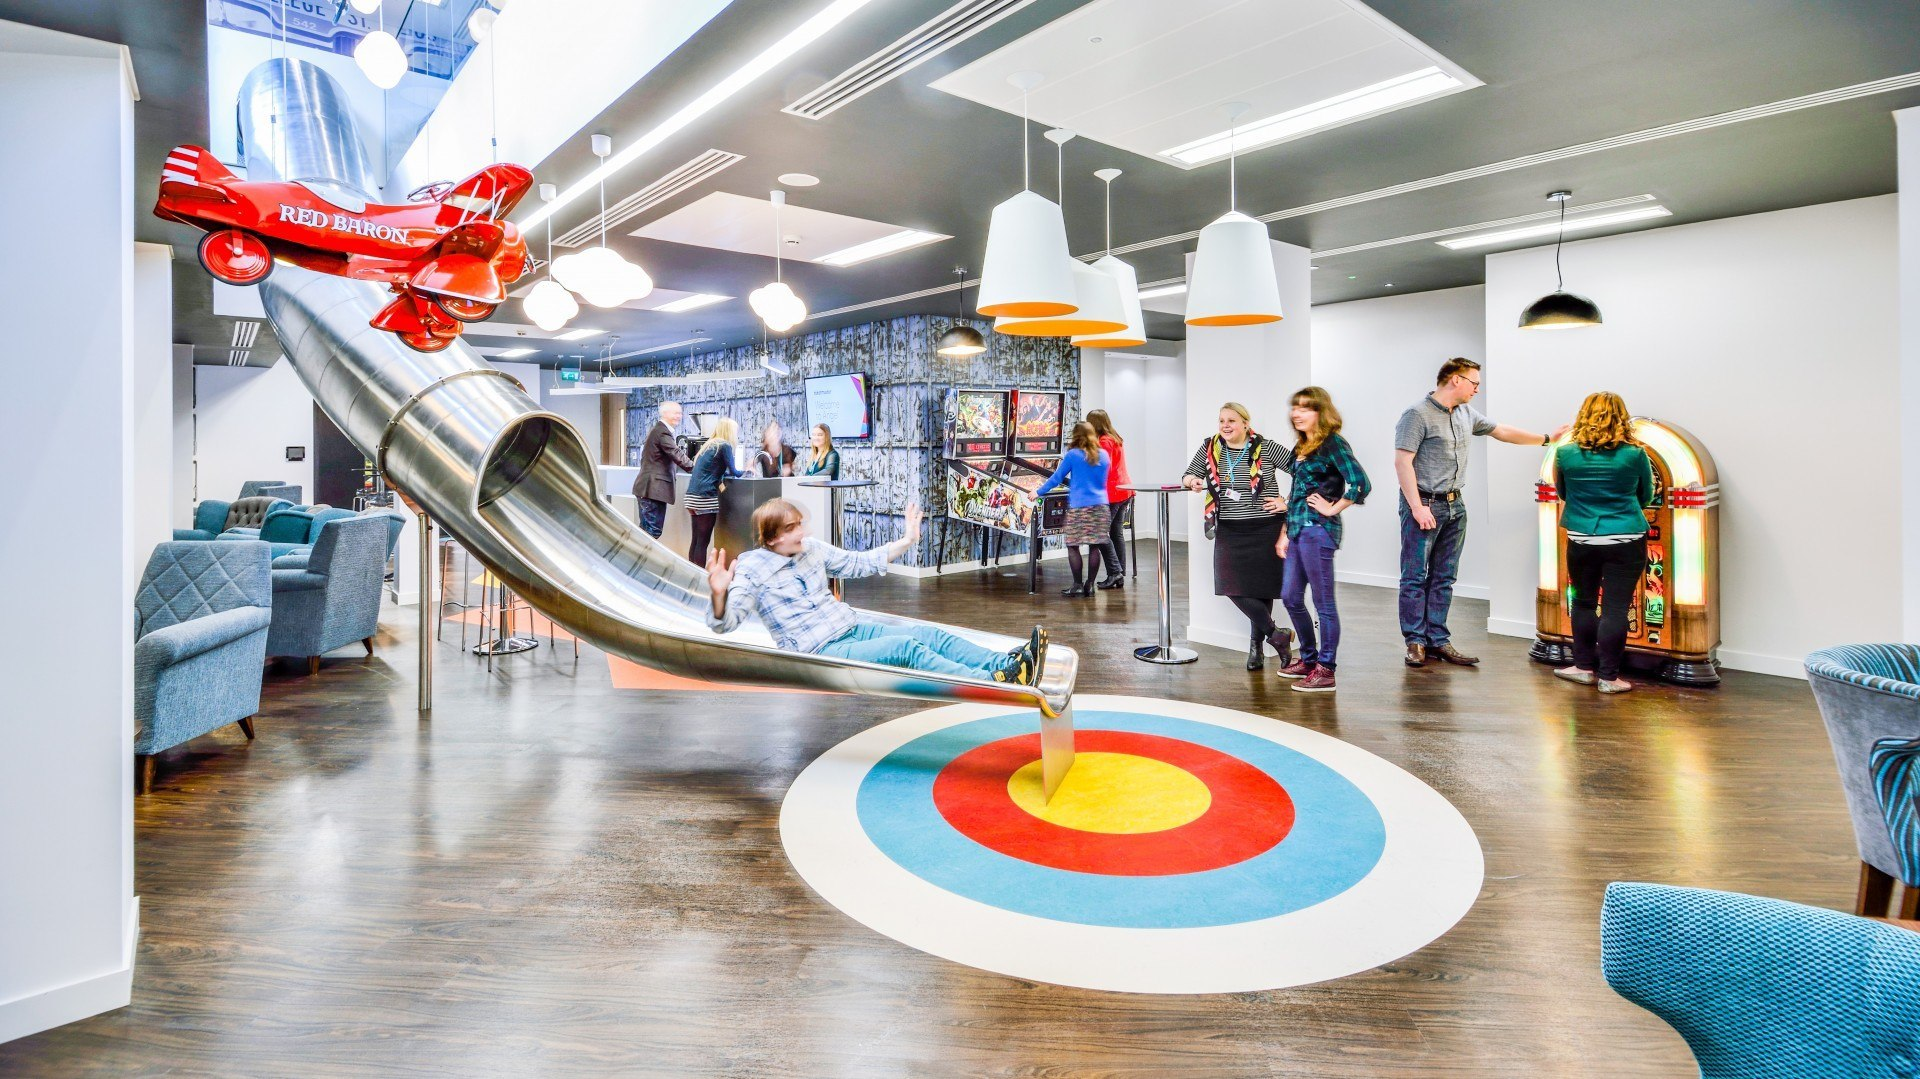 Google Office In London A Look Inside Ticketmaster's London Offices  Officelovin'